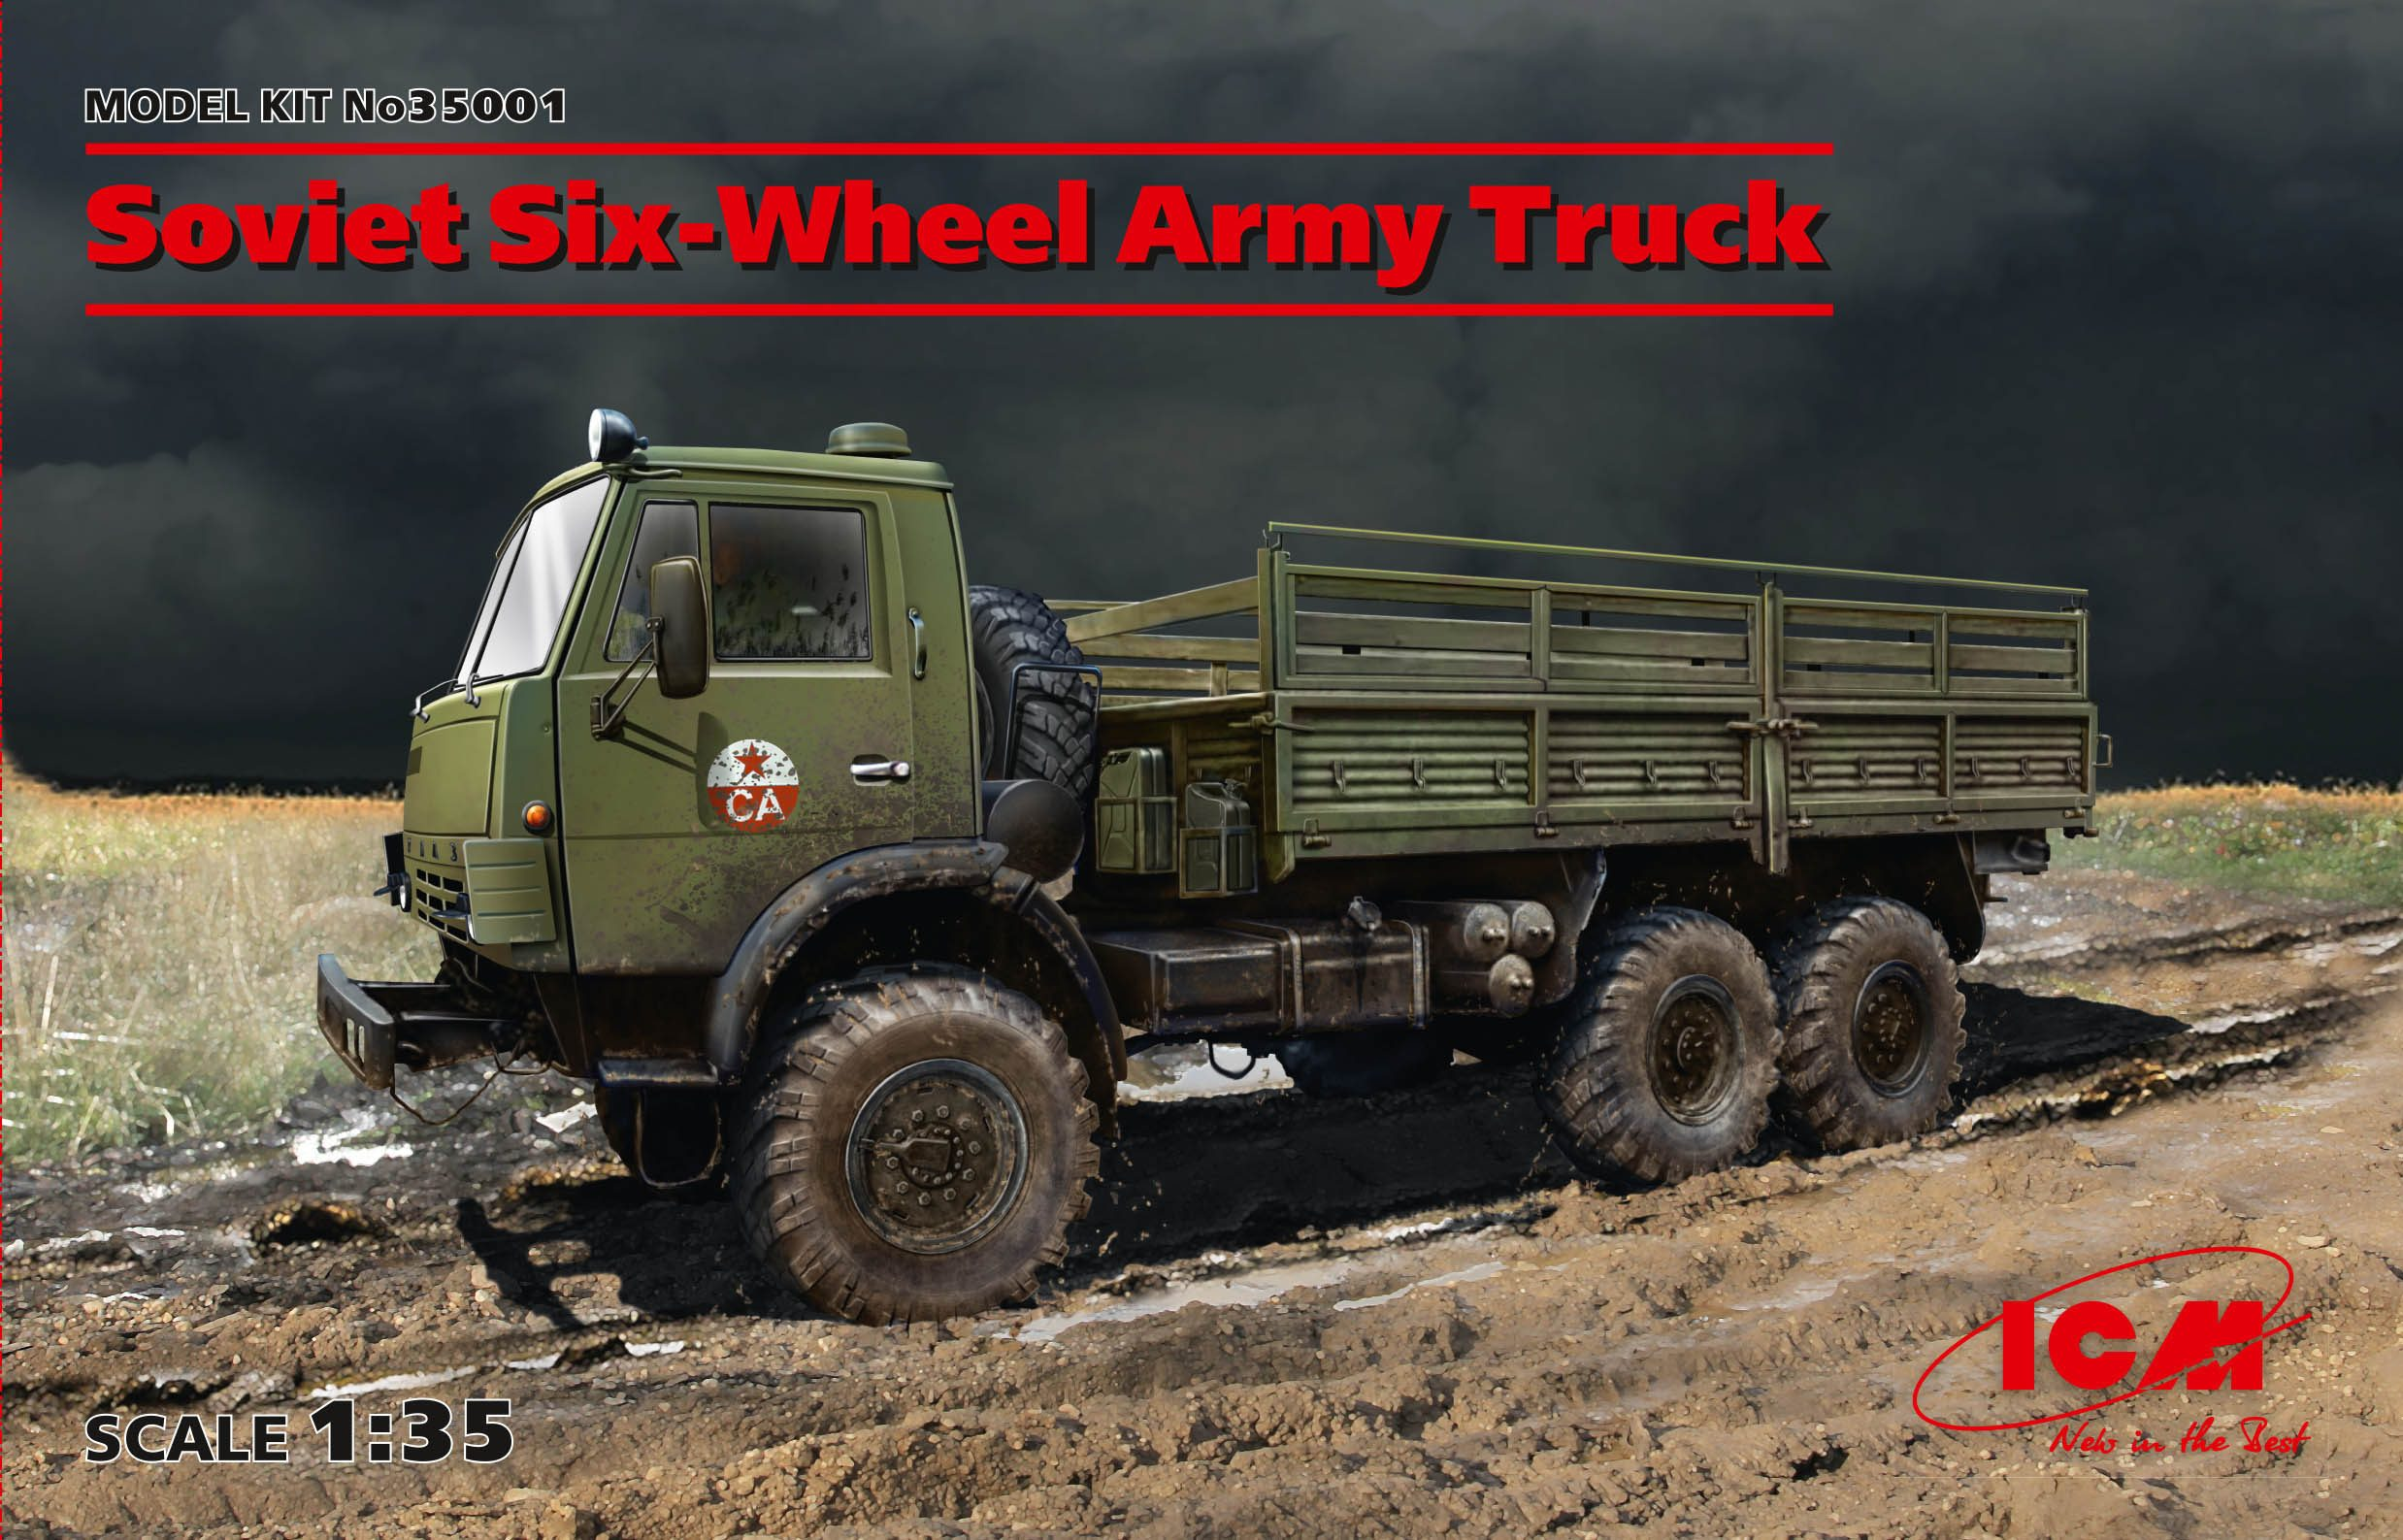 ICM Soviet Six-Wheel Army Truck